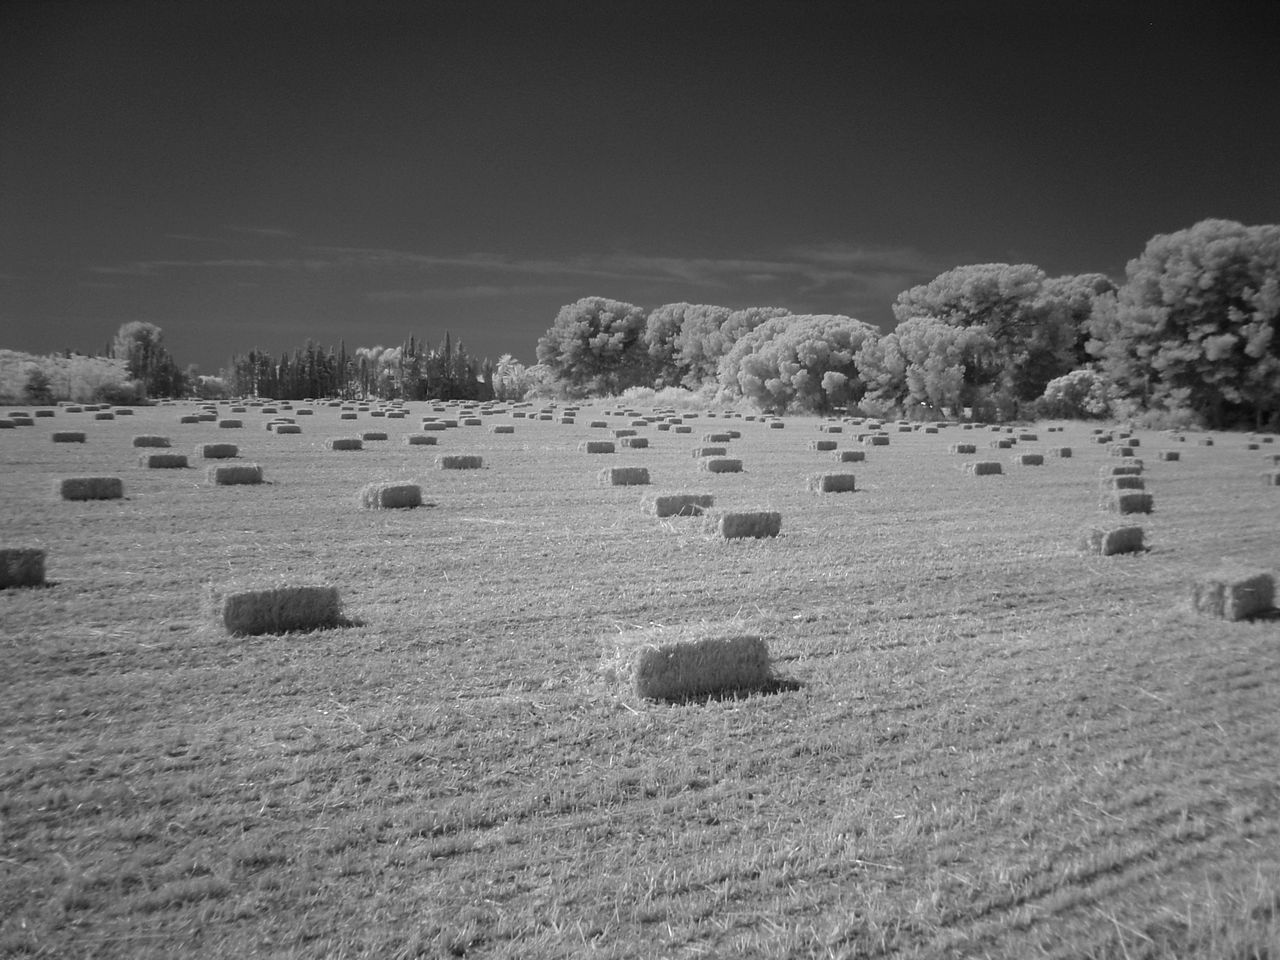 bale, agriculture, field, harvesting, hay bale, rolled up, rural scene, farm, hay, landscape, tranquility, no people, tranquil scene, nature, outdoors, sky, day, scenics, haystack, beauty in nature